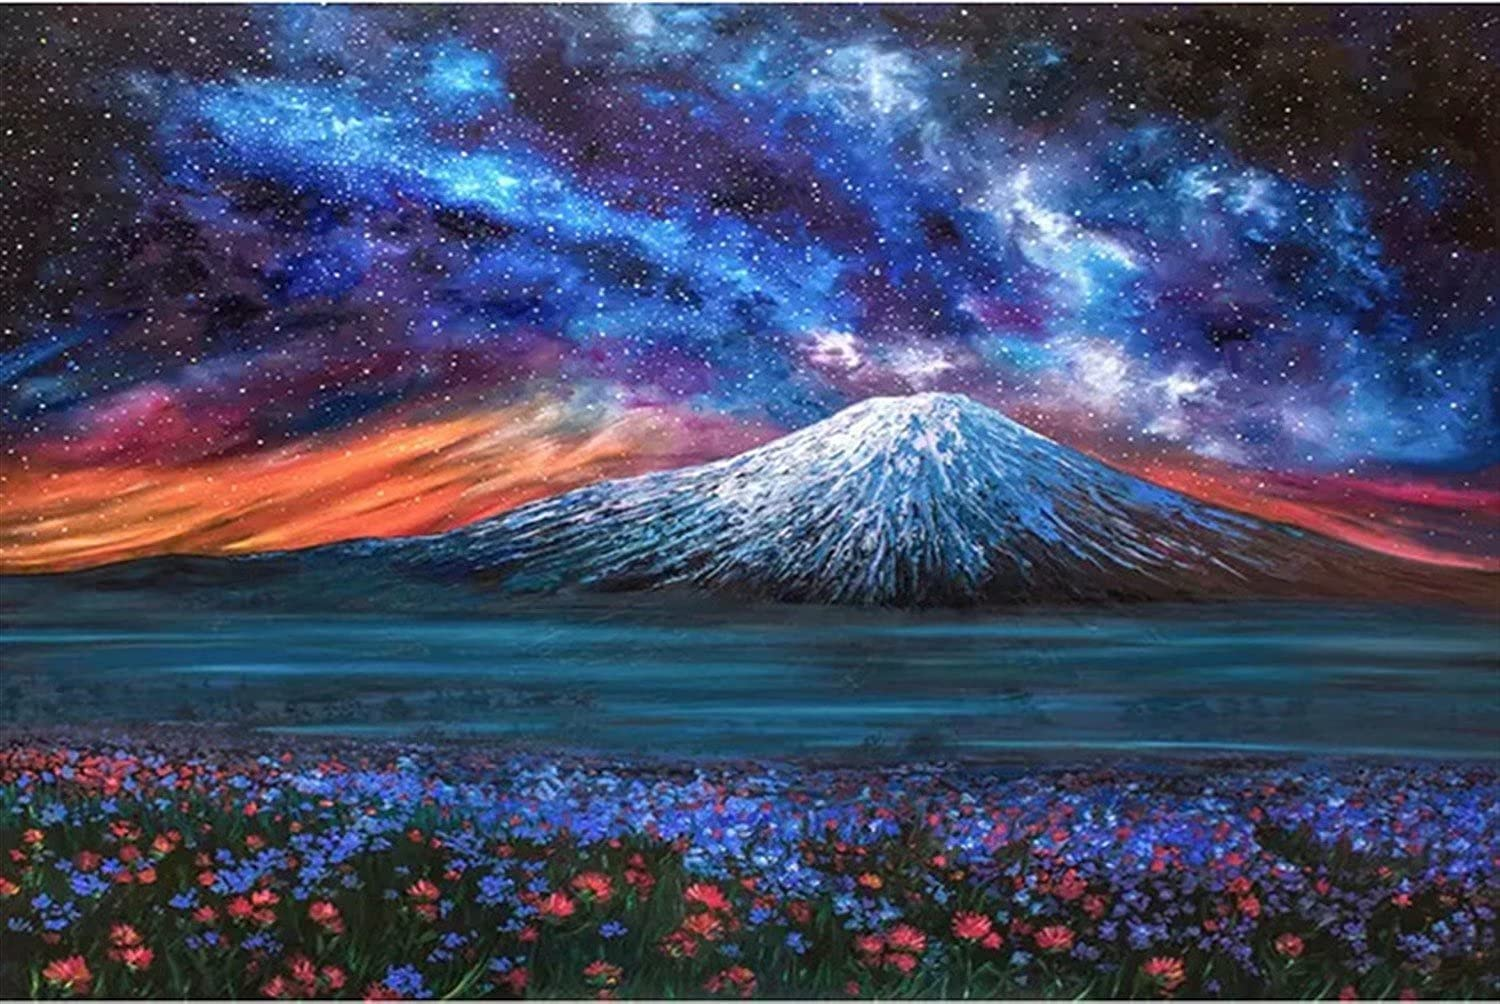 Mstoio 5000 Pieces Free shipping on shop posting reviews Jigsaw Puzzle Adults Enter Scenic Volcano for